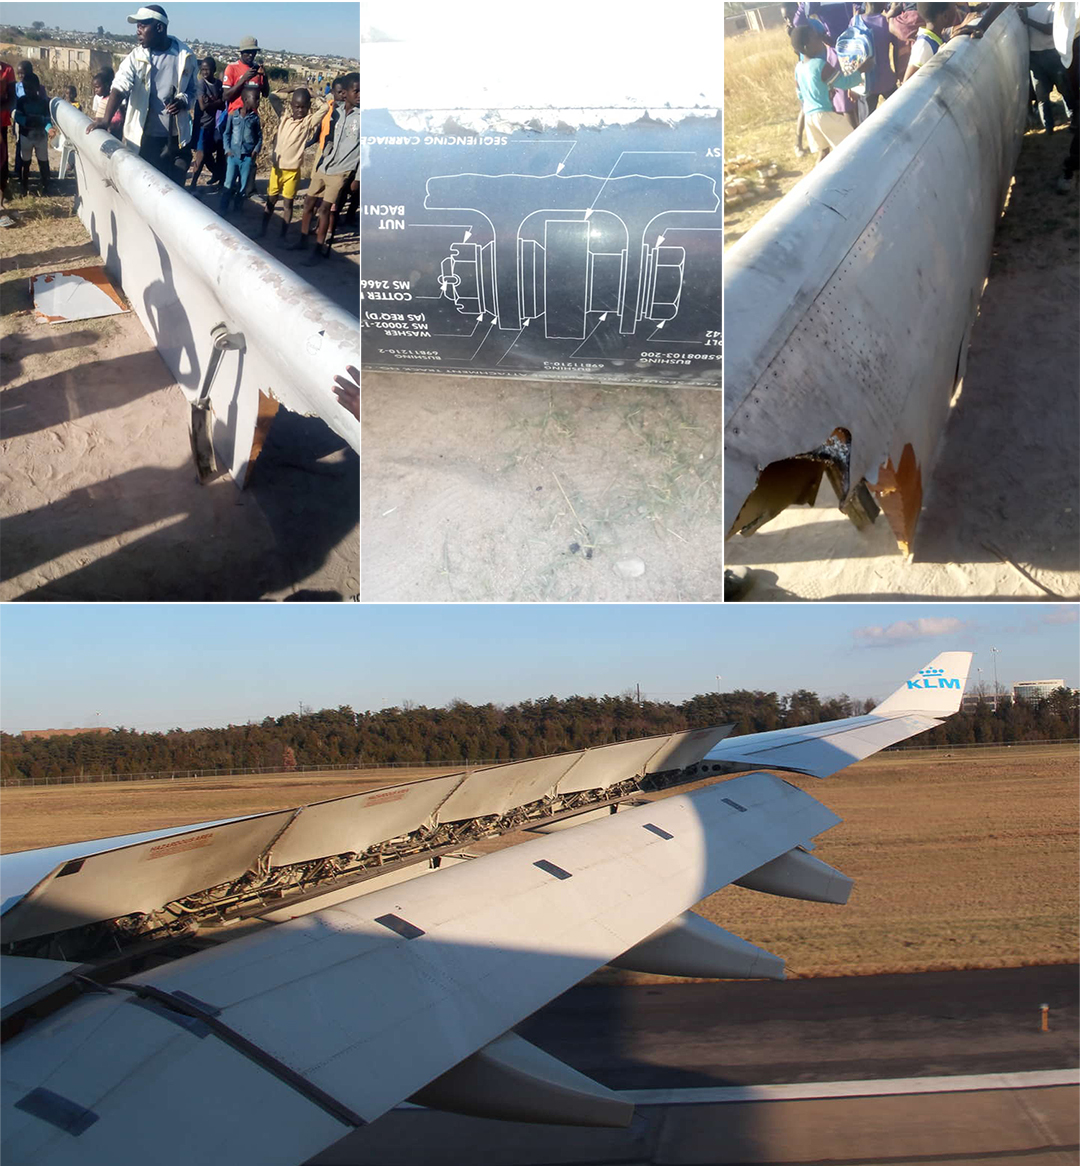 KLM cargo plane drops wing flap in Chitungwiza, lands safely in Harare